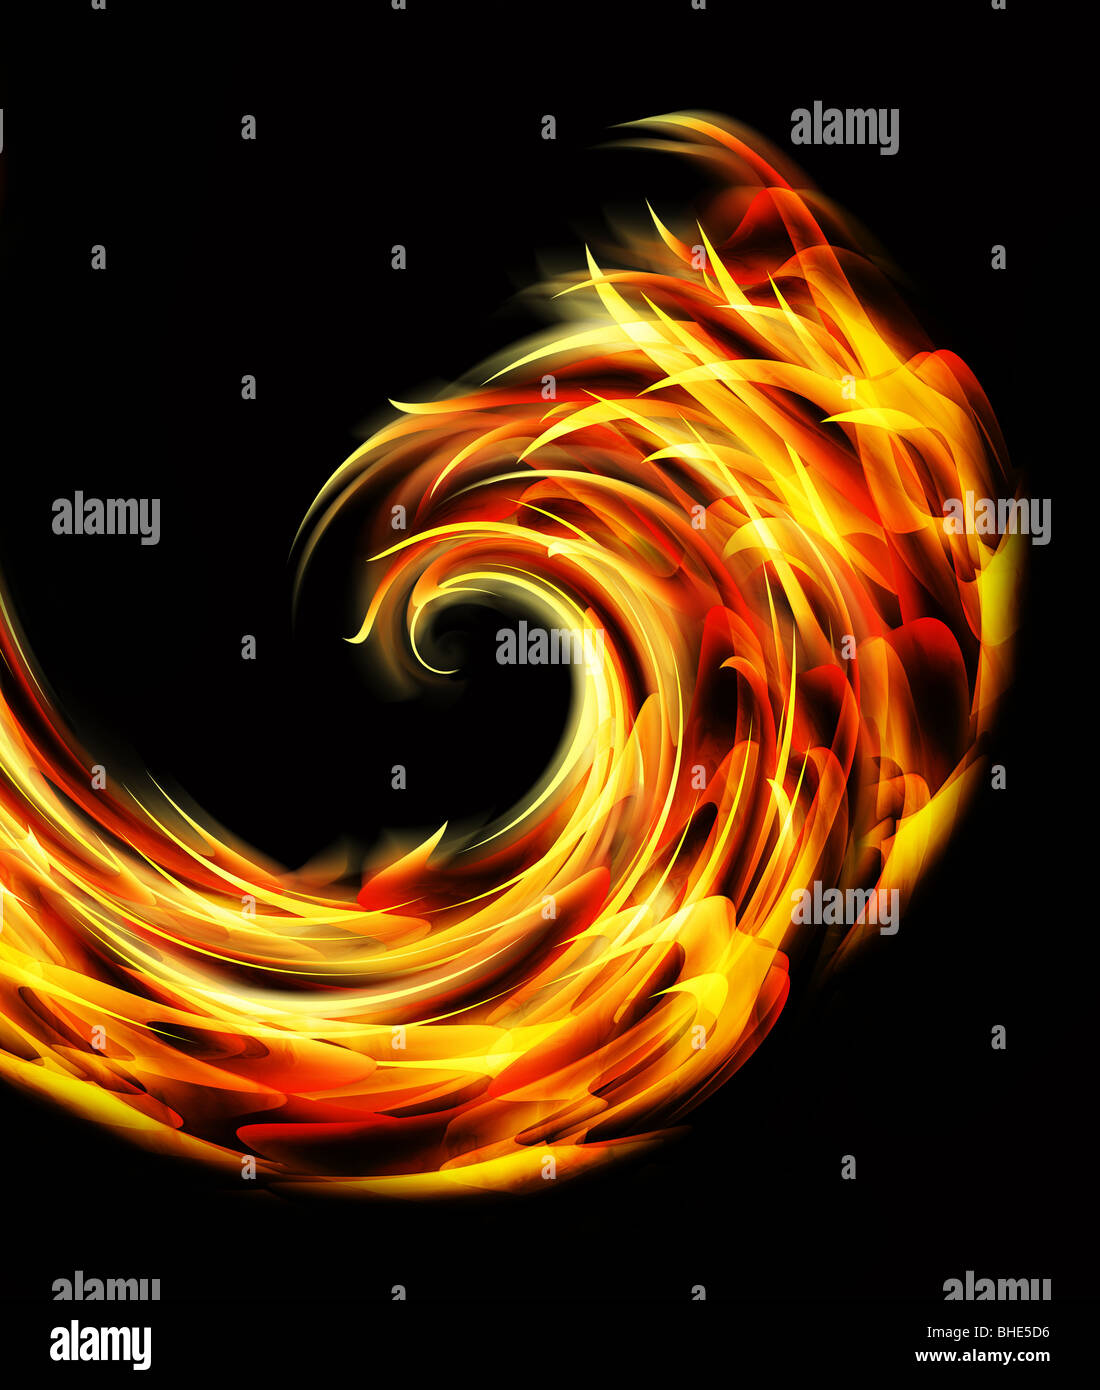 abstract graphic fire and flames illustration - Stock Image